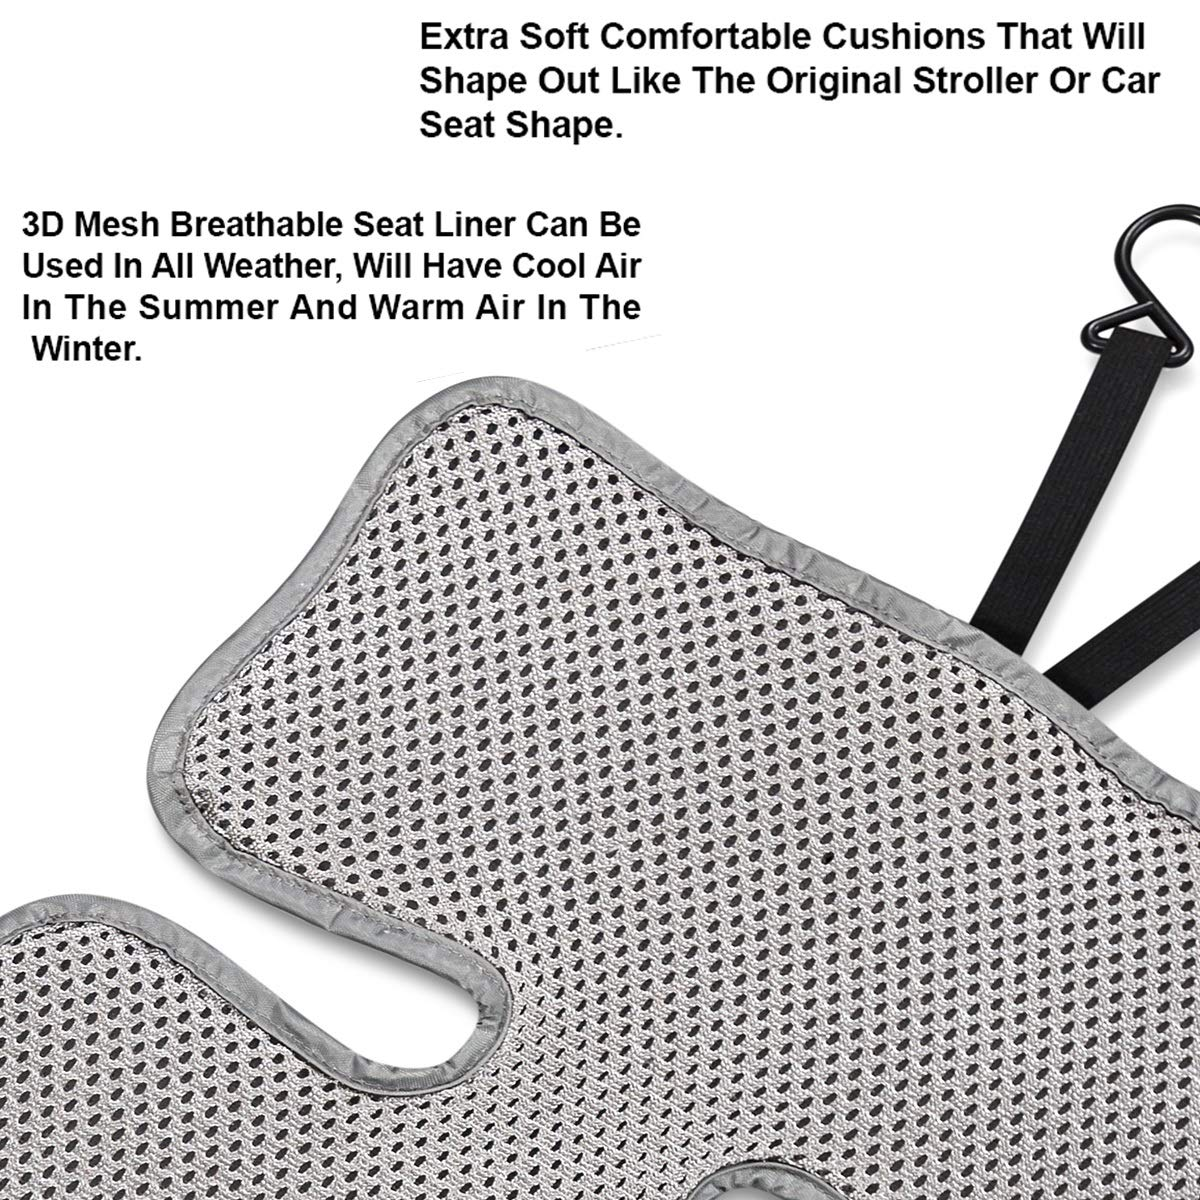 Lebogner 3D Air Mesh Cool Baby Seat Liner for Strollers, Car Seats, Jogger, Bouncer and More, Thick Cushion Seat Pad Protector, Supports Newborns, Infants, and Toddlers, Installs Quick and Easy, Grey by lebogner (Image #3)